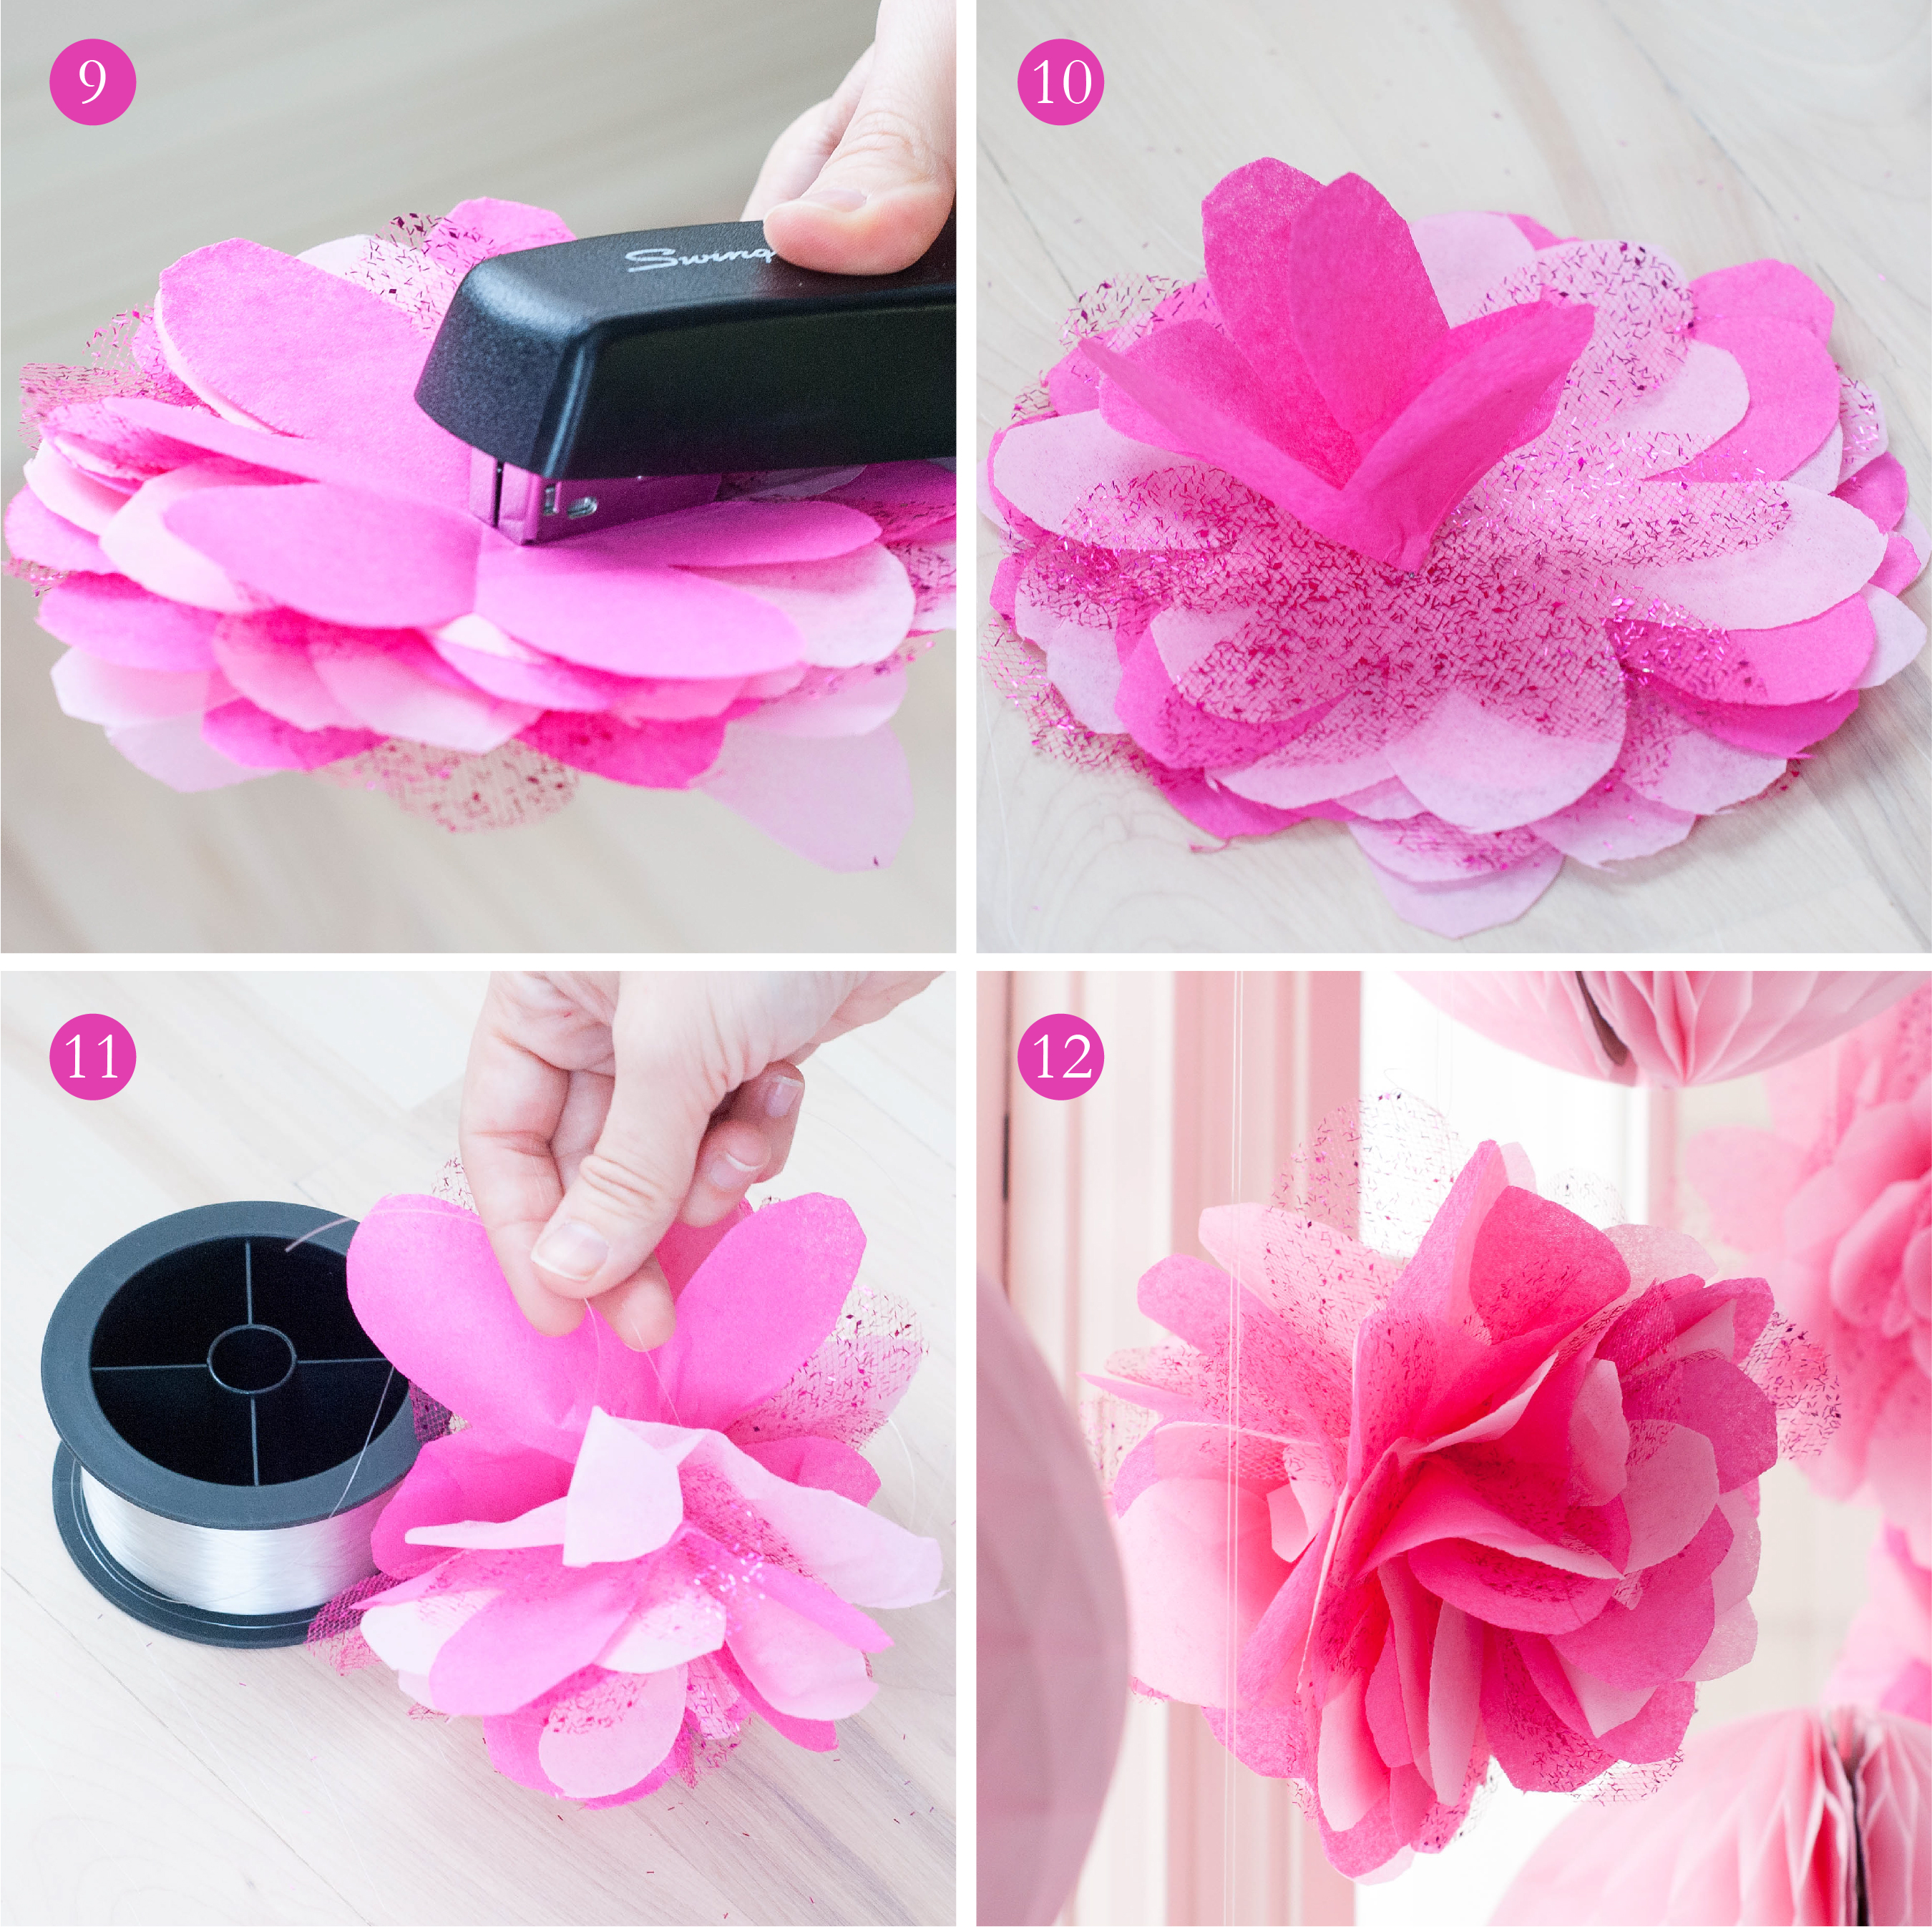 Crepe Paper Flower Ball Diy Tutorial How To Make Paper Flower Balls